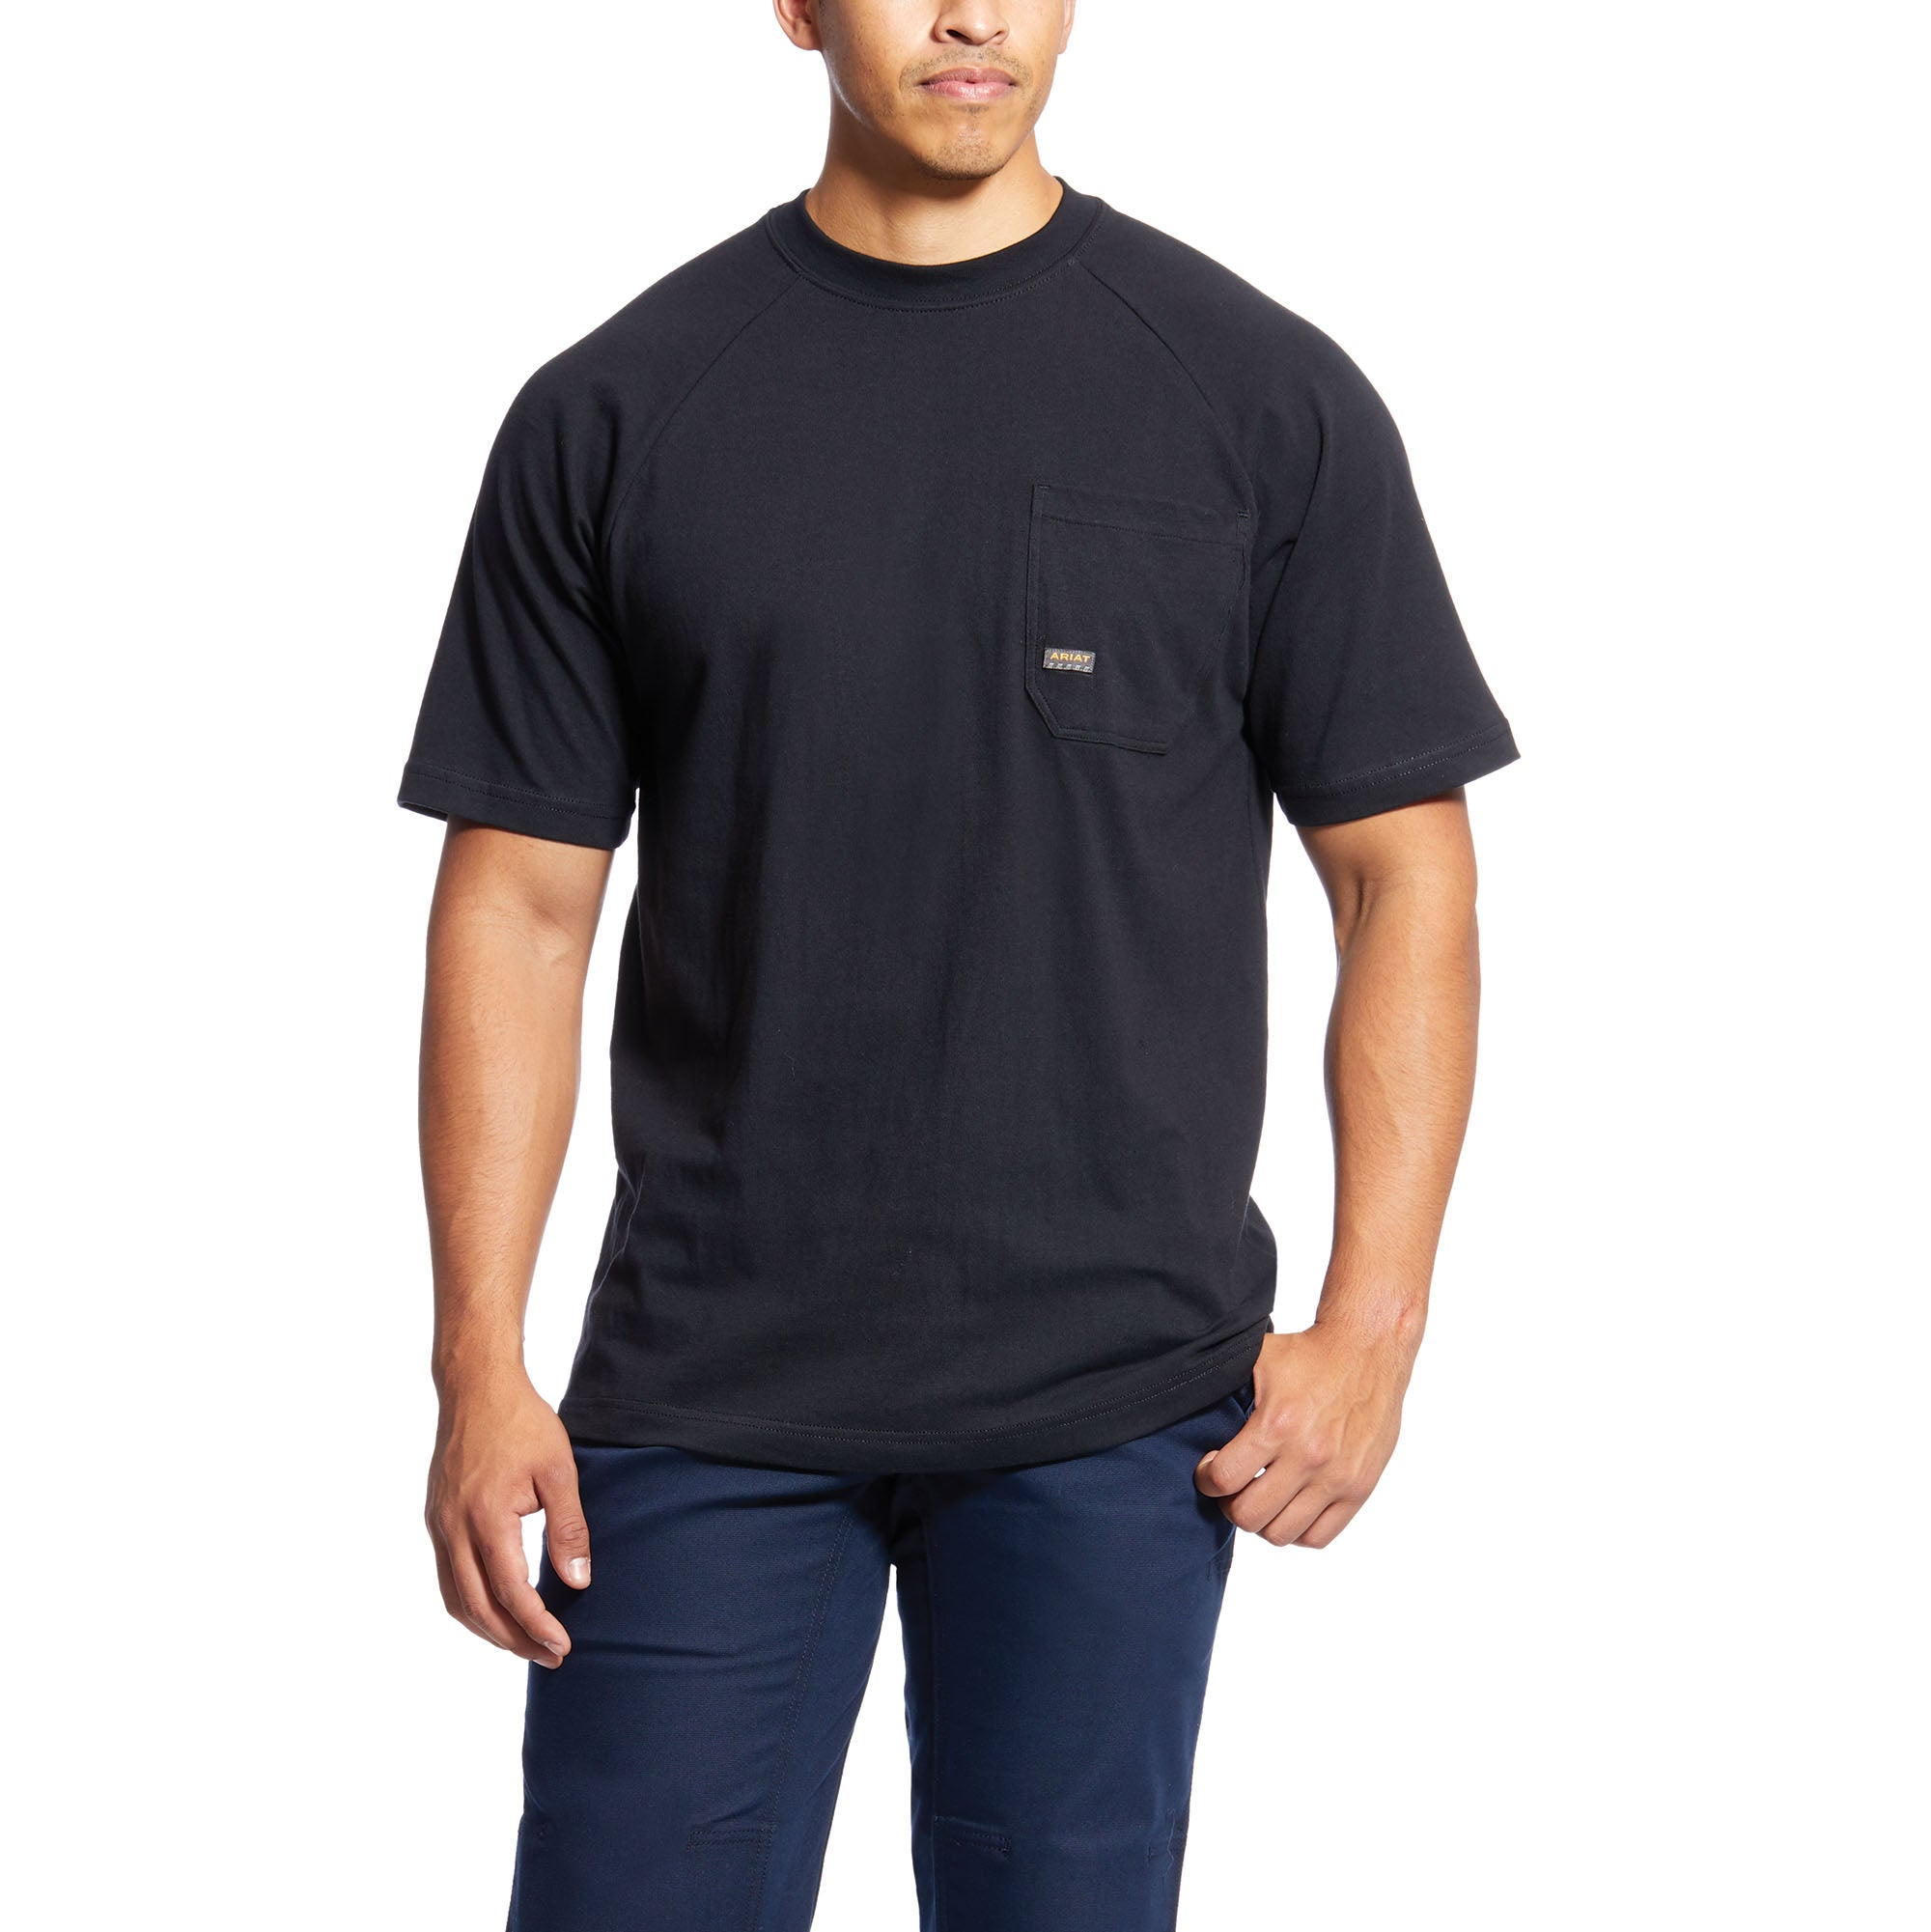 'Ariat' Men's Rebar™ CottonStrong Crew - Black